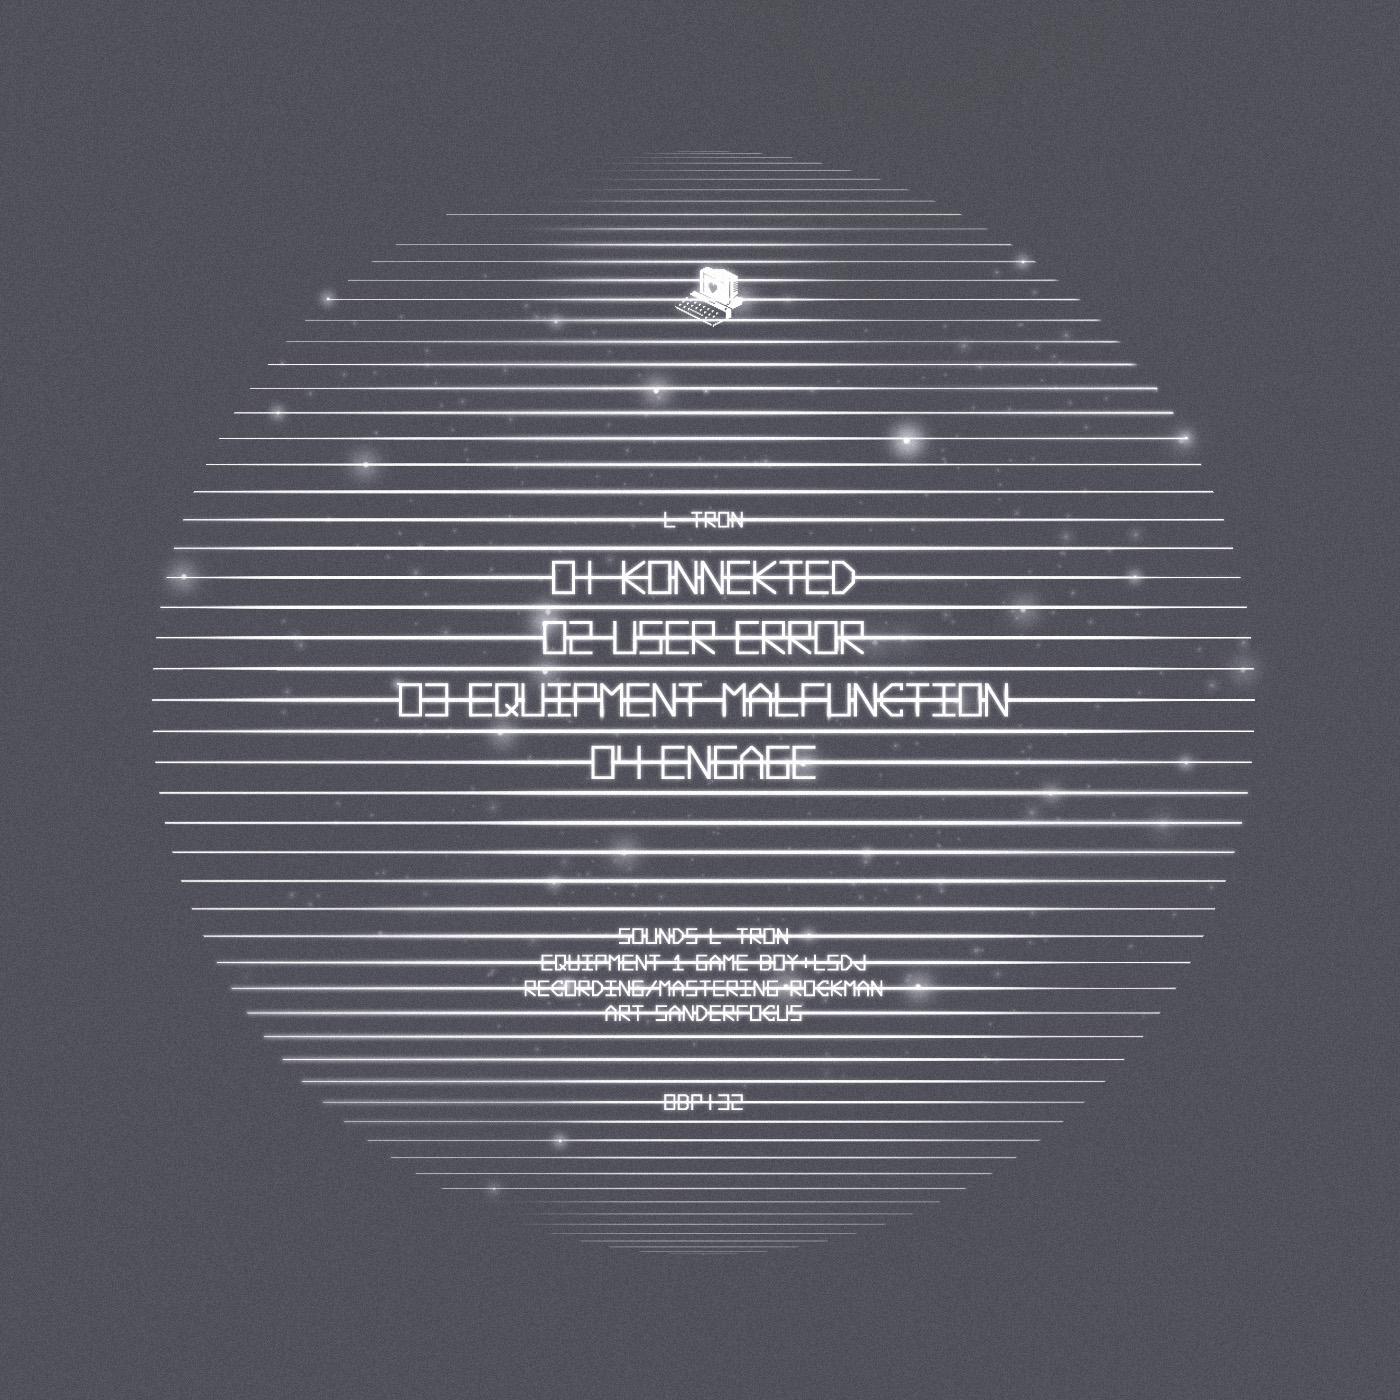 L Tron Delivers A Tightly Packaged Box Of Wrangled Insanity Tied Together  With Disarming Potency And Four On The Floor Beats. This Is More Than Dance  Music, ...